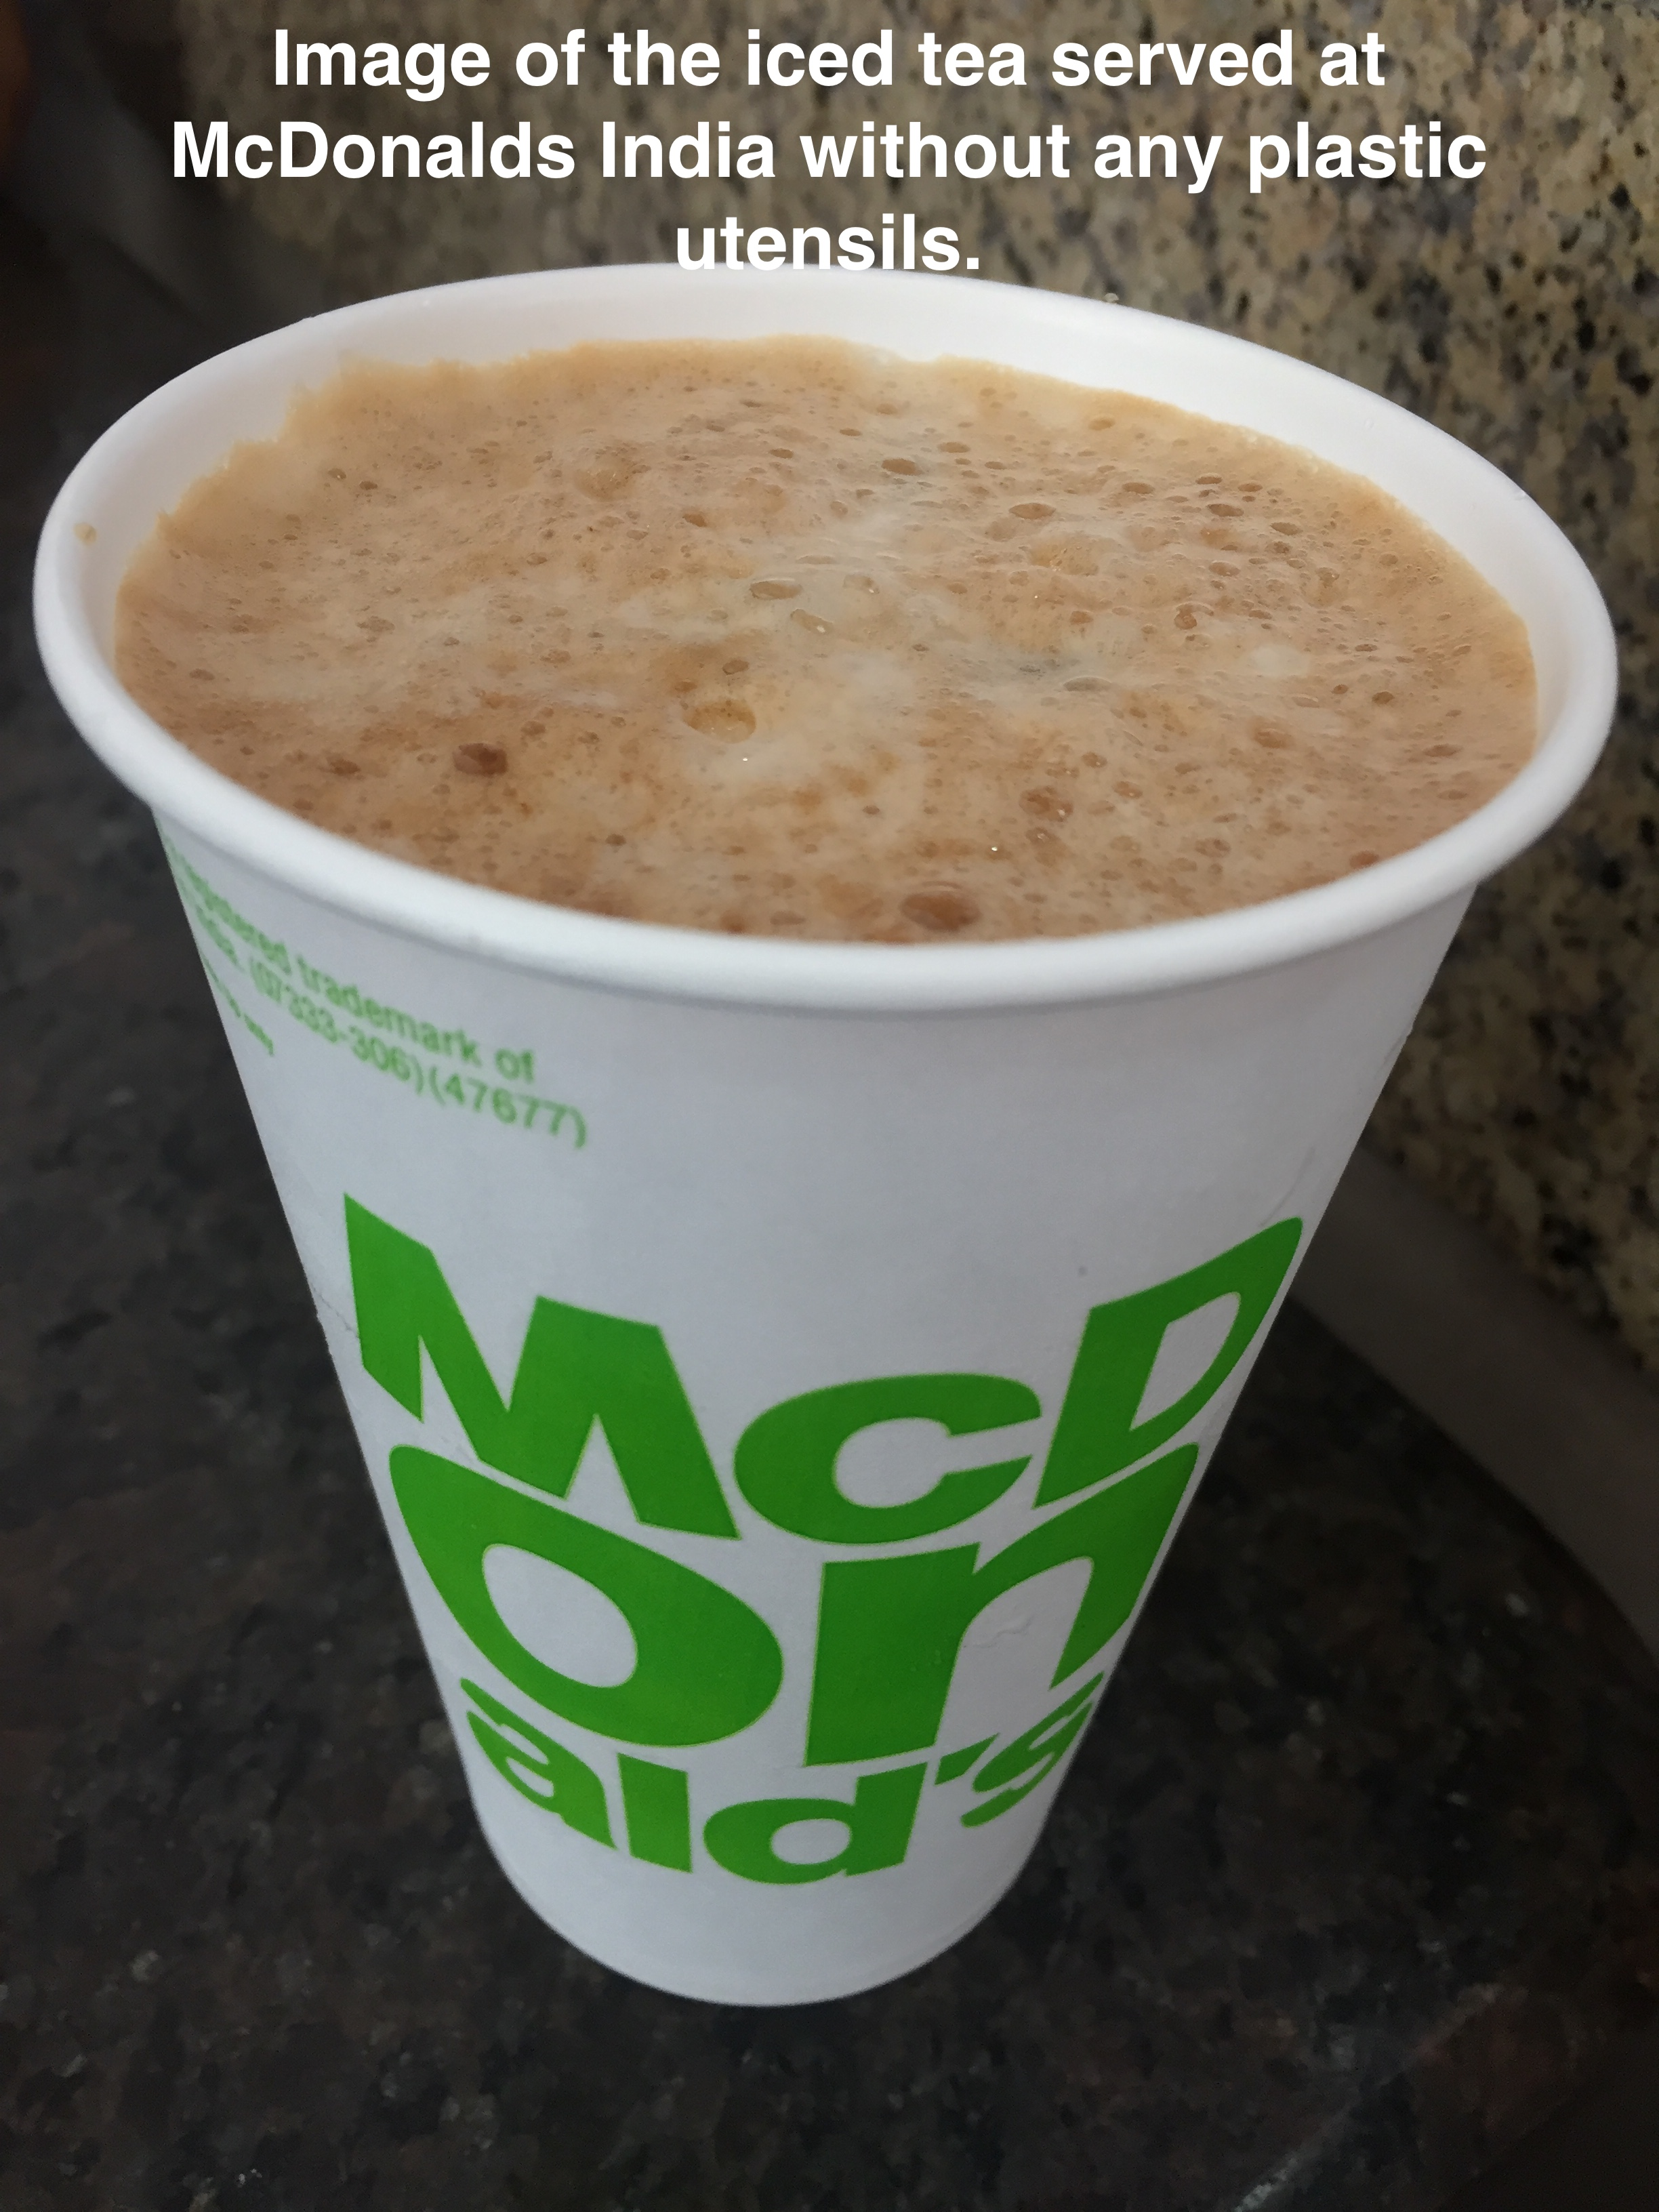 Iced tea being served without plastic products at Mcdonalds India